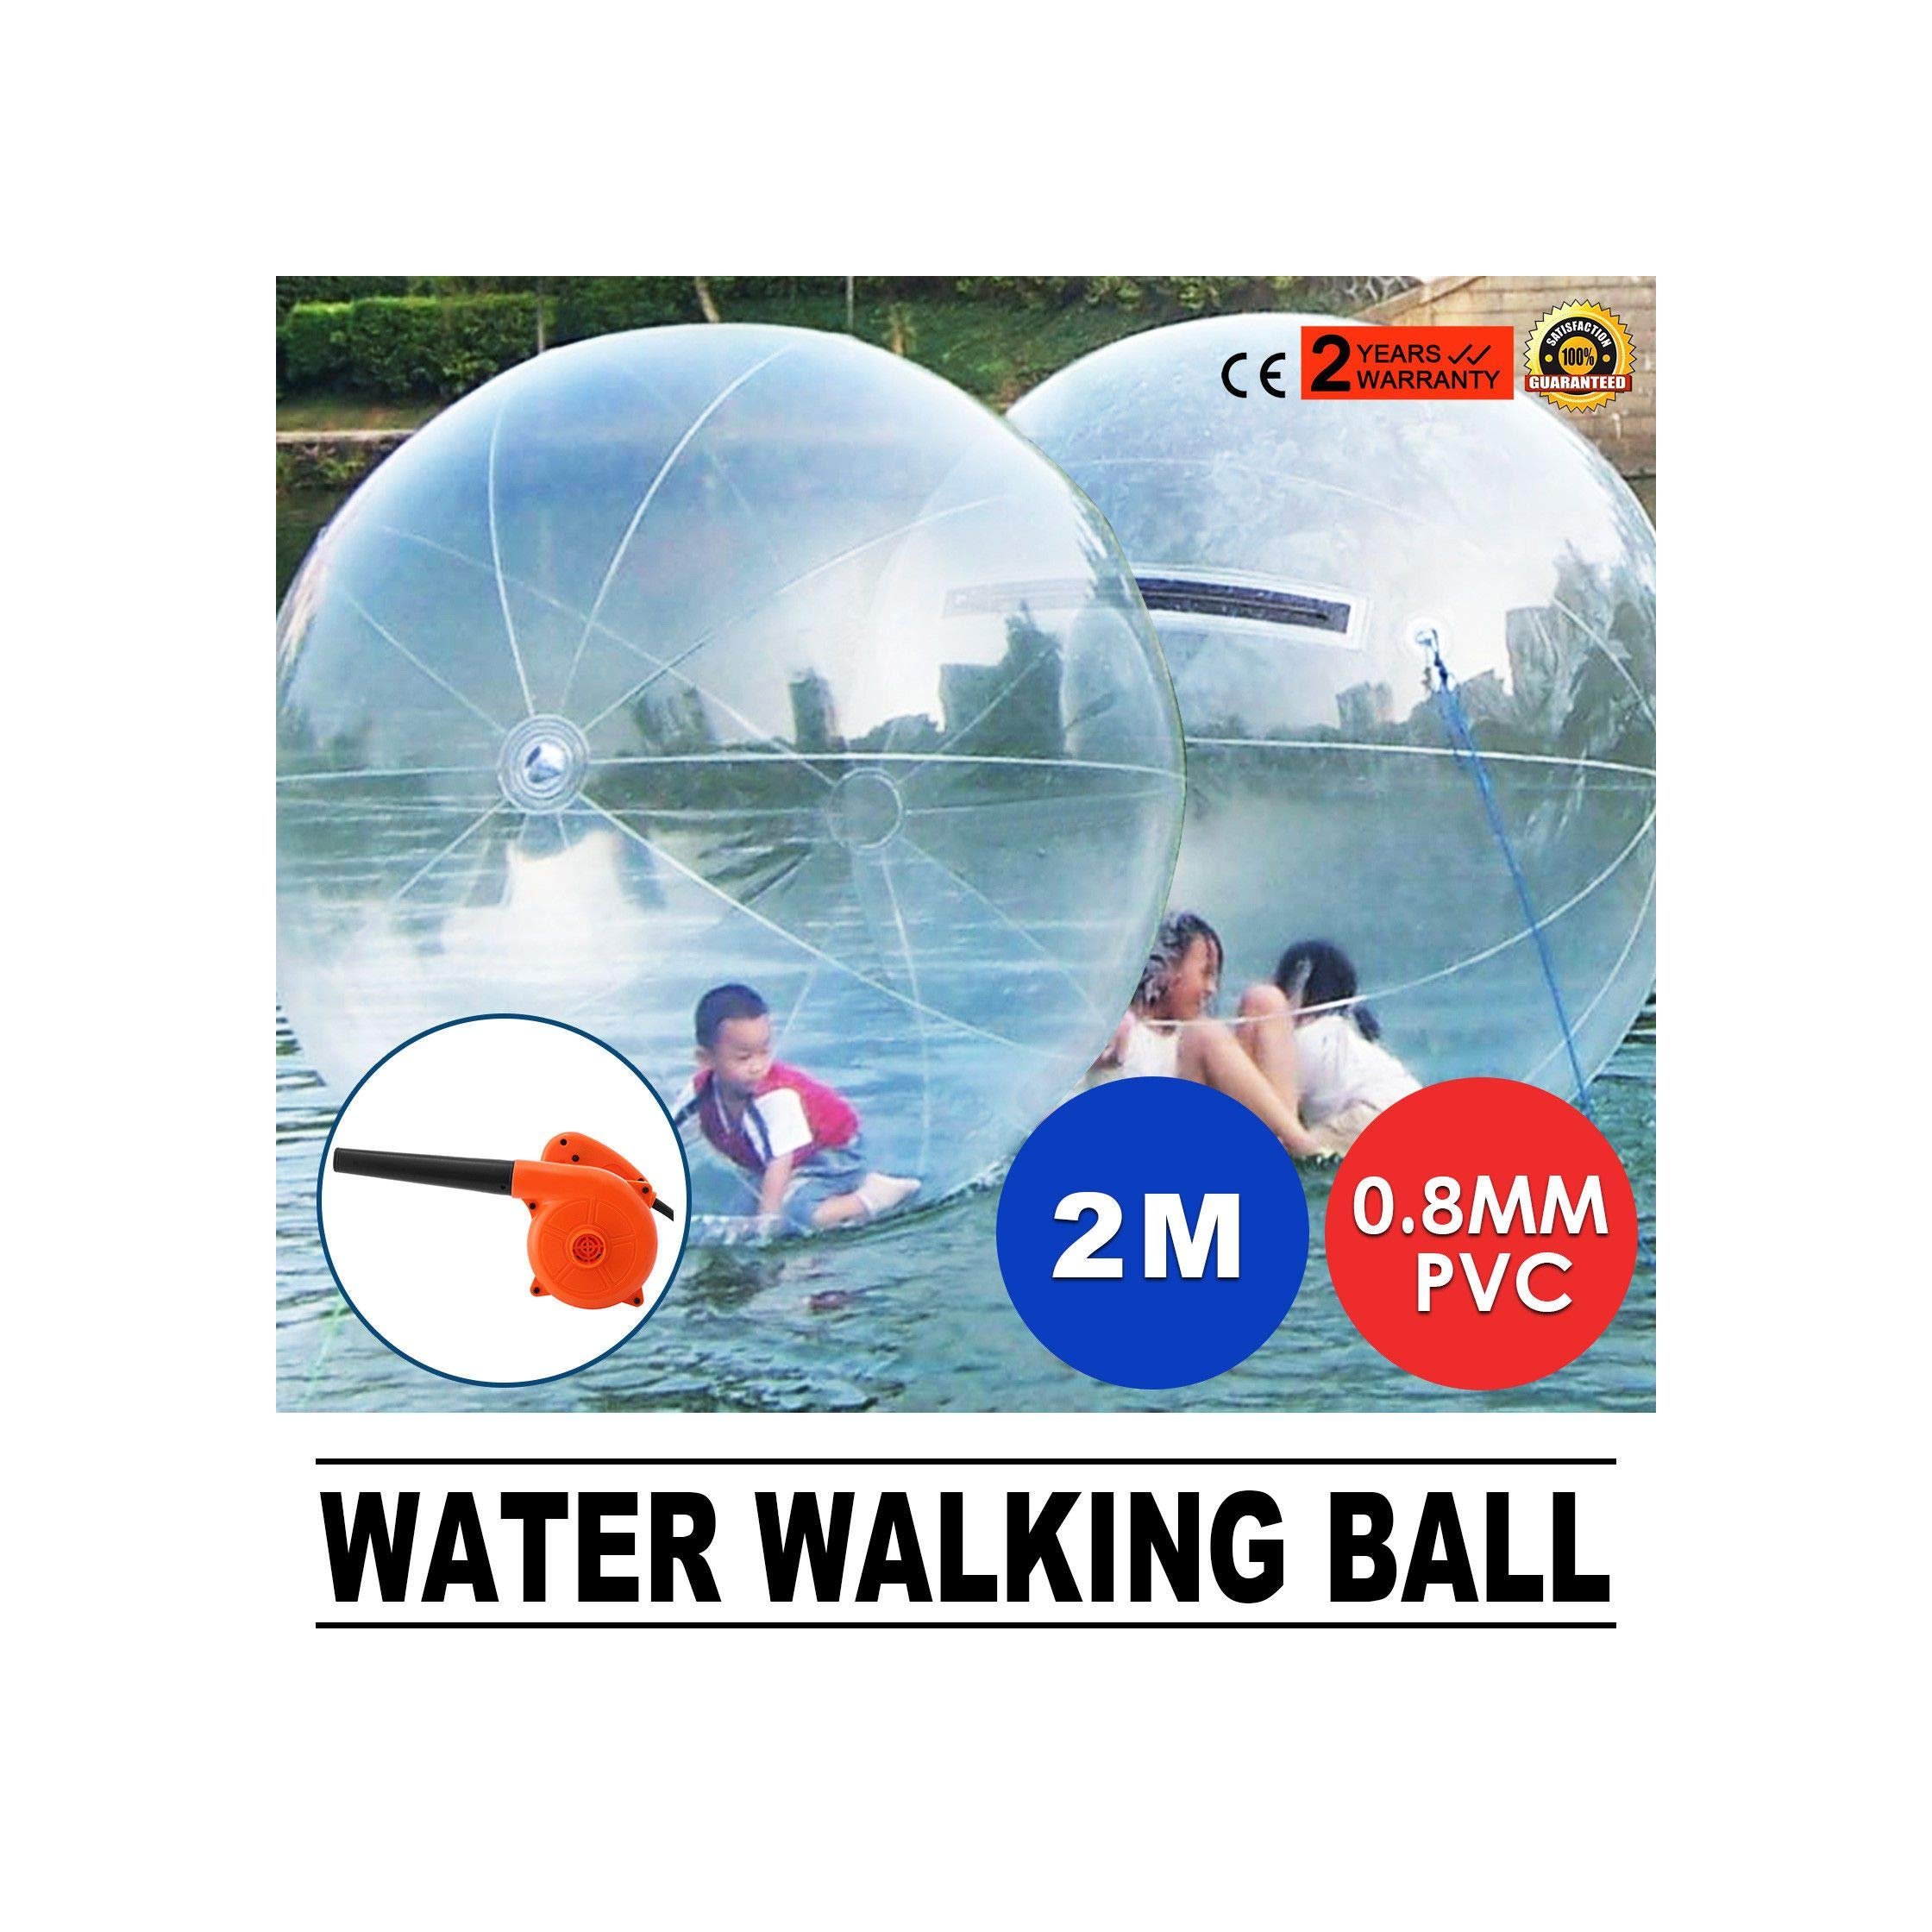 Reliable Safe 2M Water Walking ZORB Dance ROLL Ball Inflatable TI-Zip Zipper Fun Play Quick Arrive